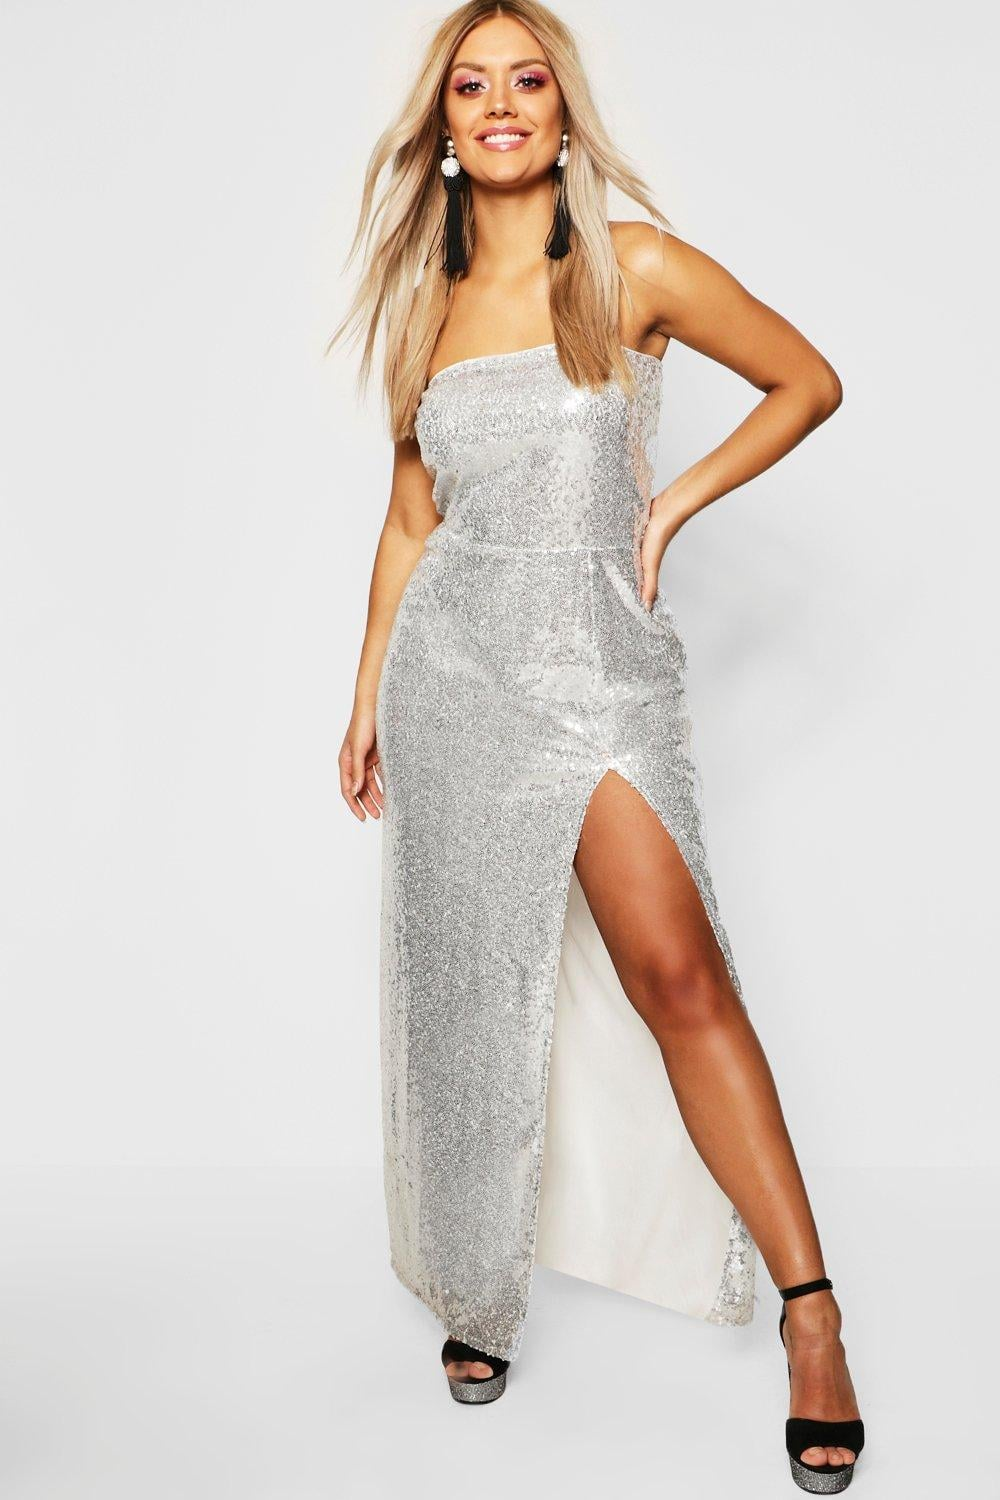 release info on exclusive shoes presenting Boohoo Gemma Collins Bandeau Sequin Maxi Dress | Kourtney ...